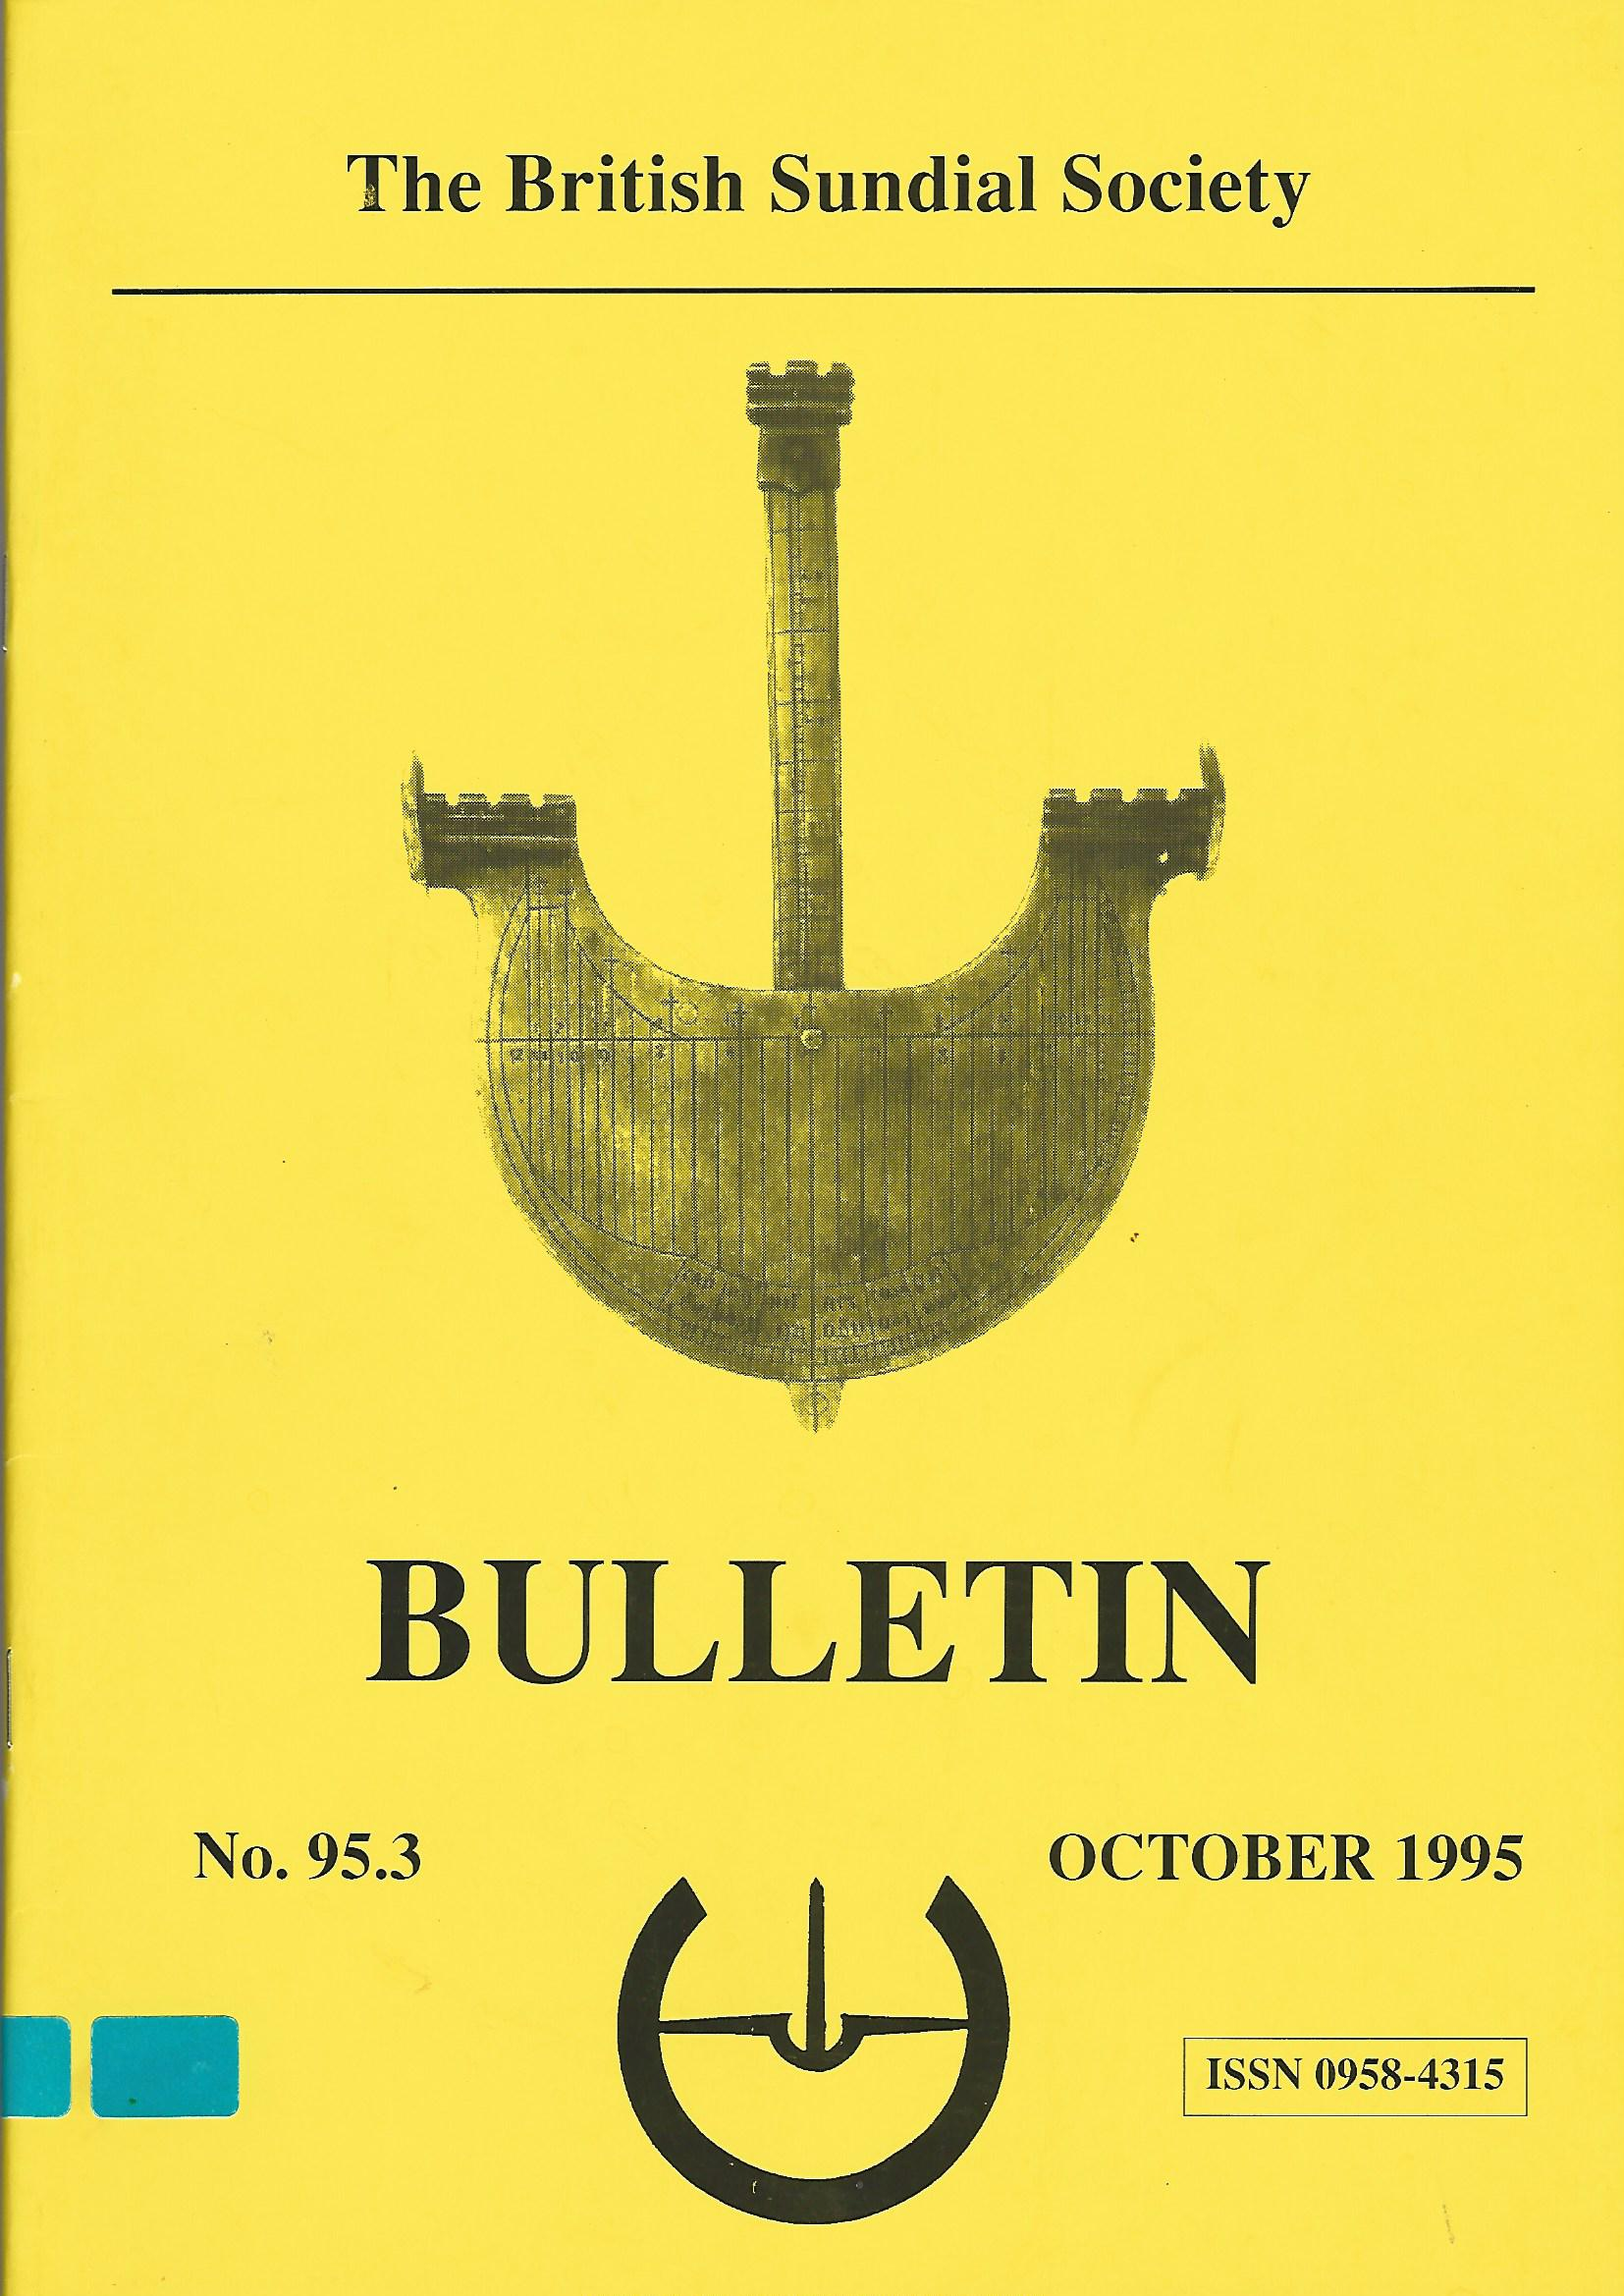 Image for The British Sundial Society Bulletin No. 95.3, October 1995.